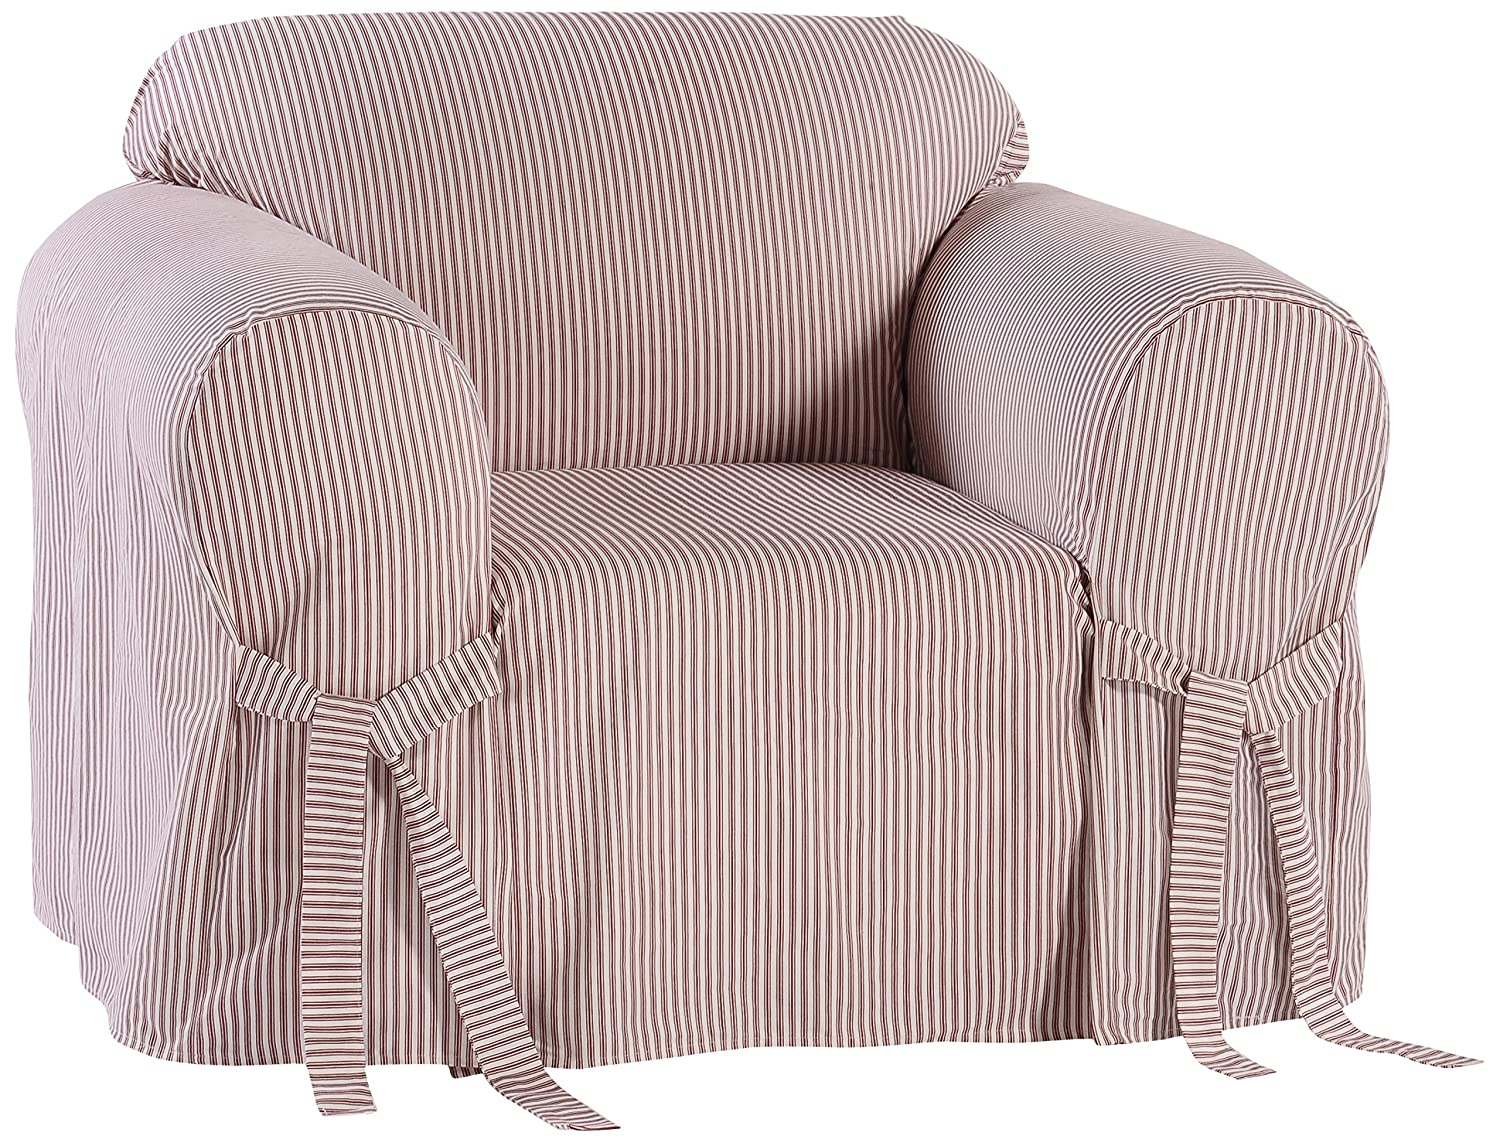 Classic Slipcovers BT30RAST One Piece Stripe Twill Chair Slipcover, Navy/White